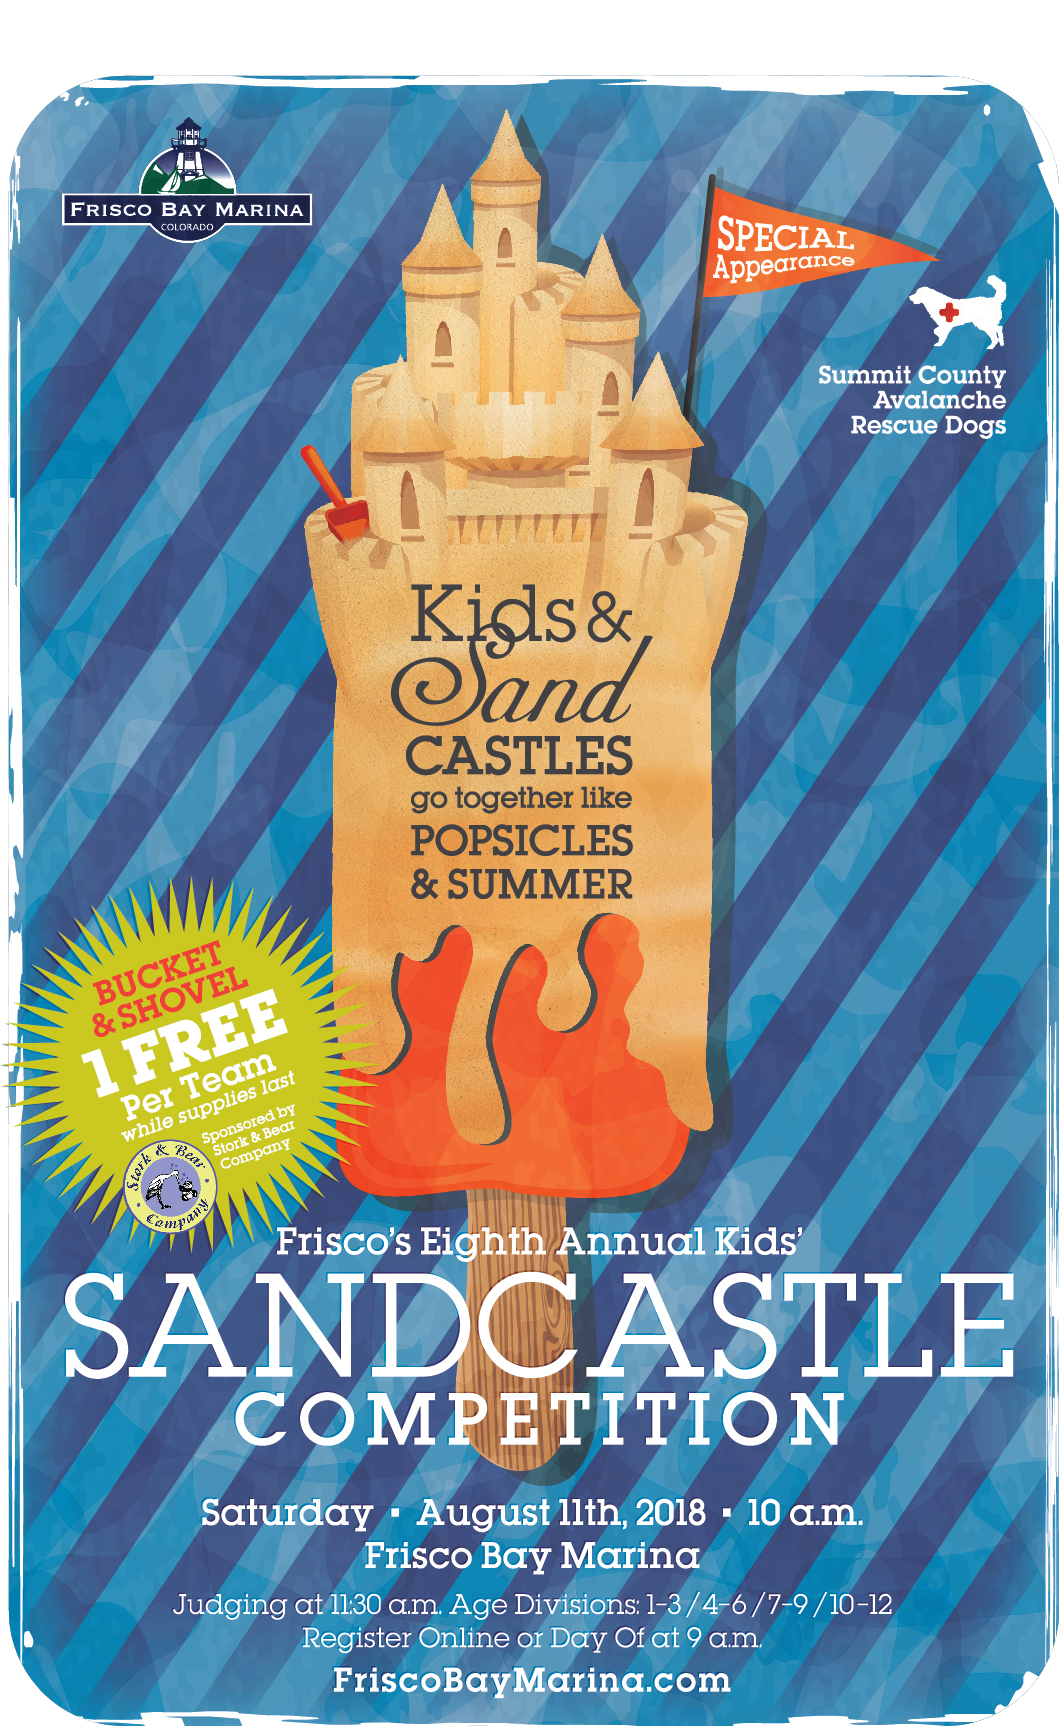 Sandcastle Competition Event Poster